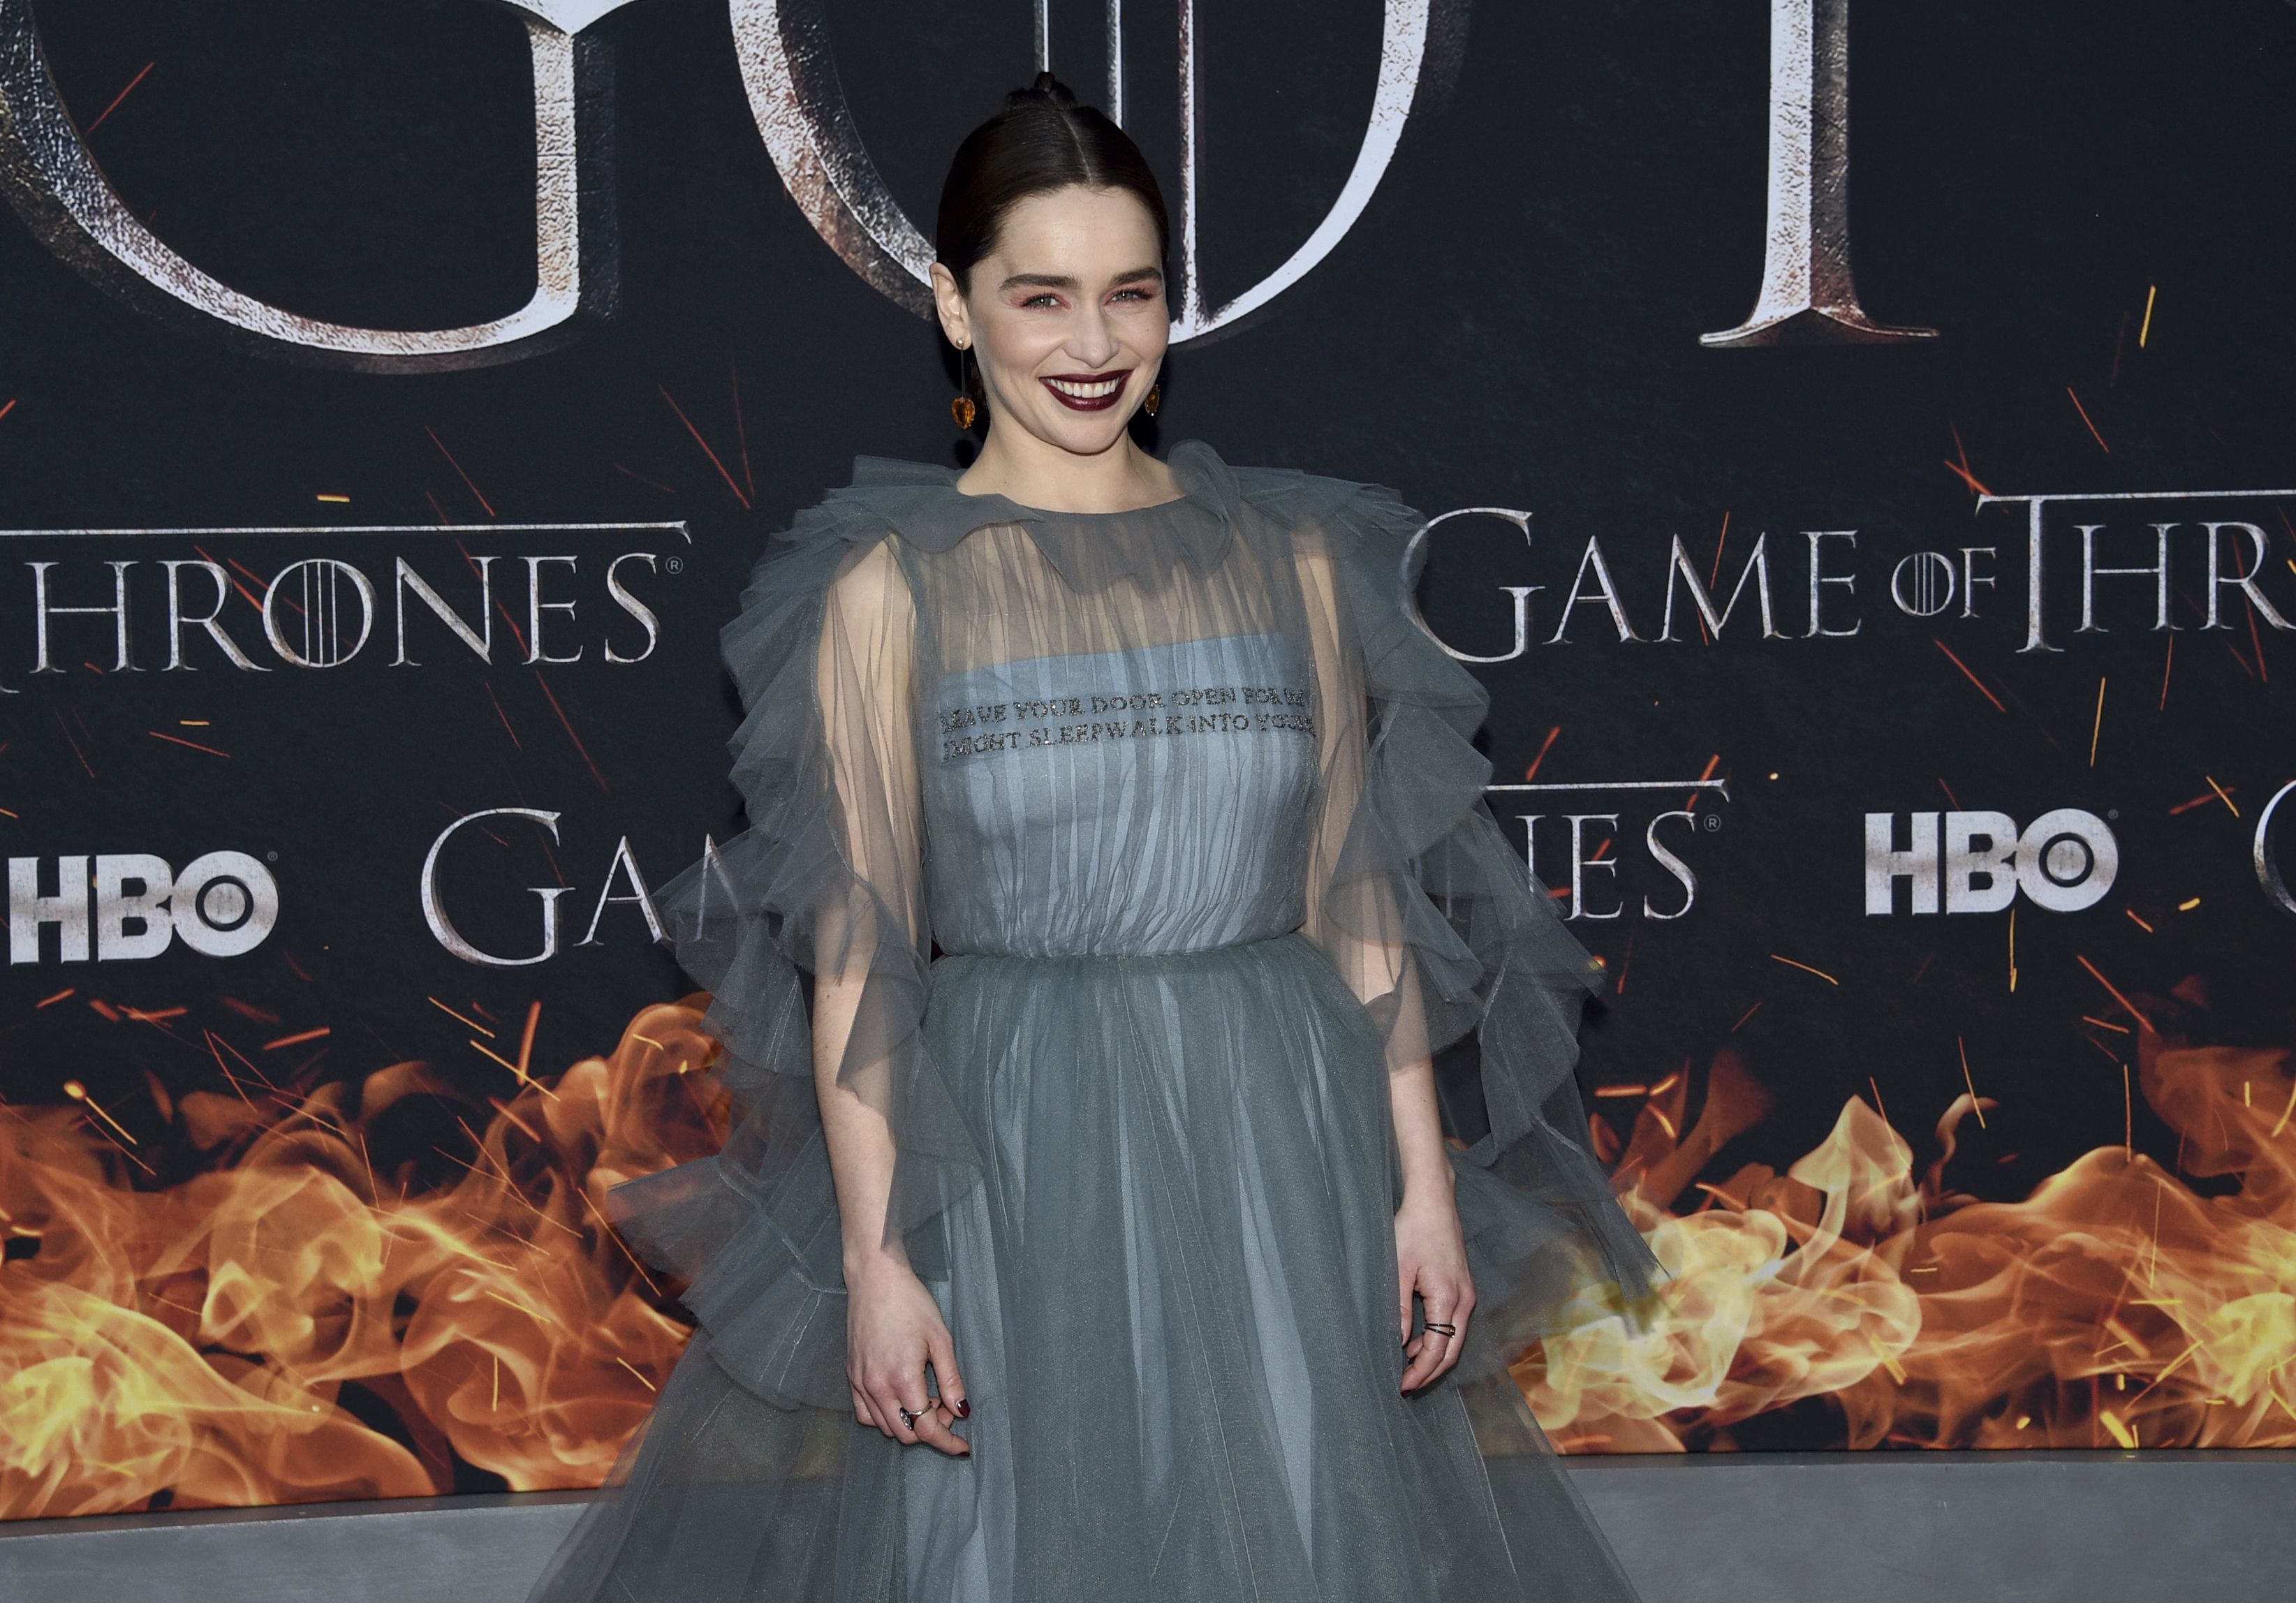 Jason Momoa Opens Up About 'Game of Thrones' Co-Star Emilia Clarke's Aneurysms